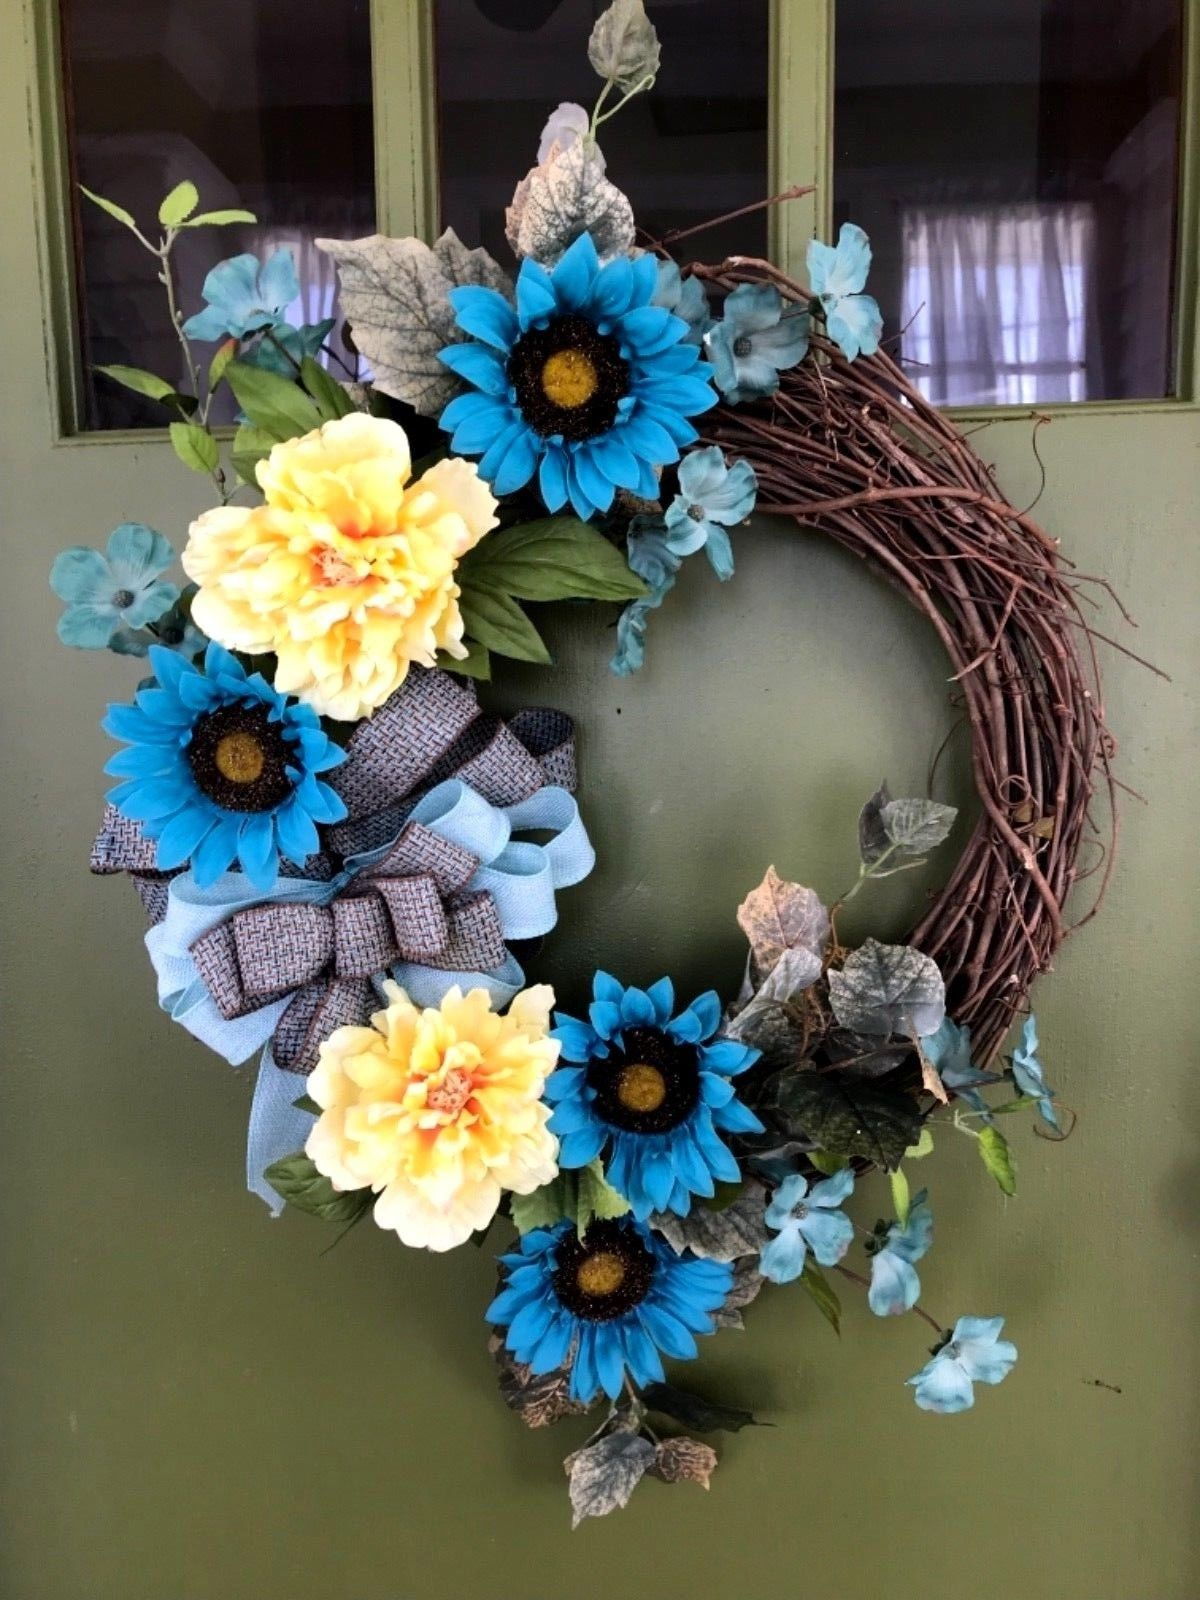 Free Shipping Wreaths Wreaths For Front Door Everyday Grapevine Spring Summer Farmhouse Primitive Etsy Wreaths Wreaths For Front Door Grapevine Wreath